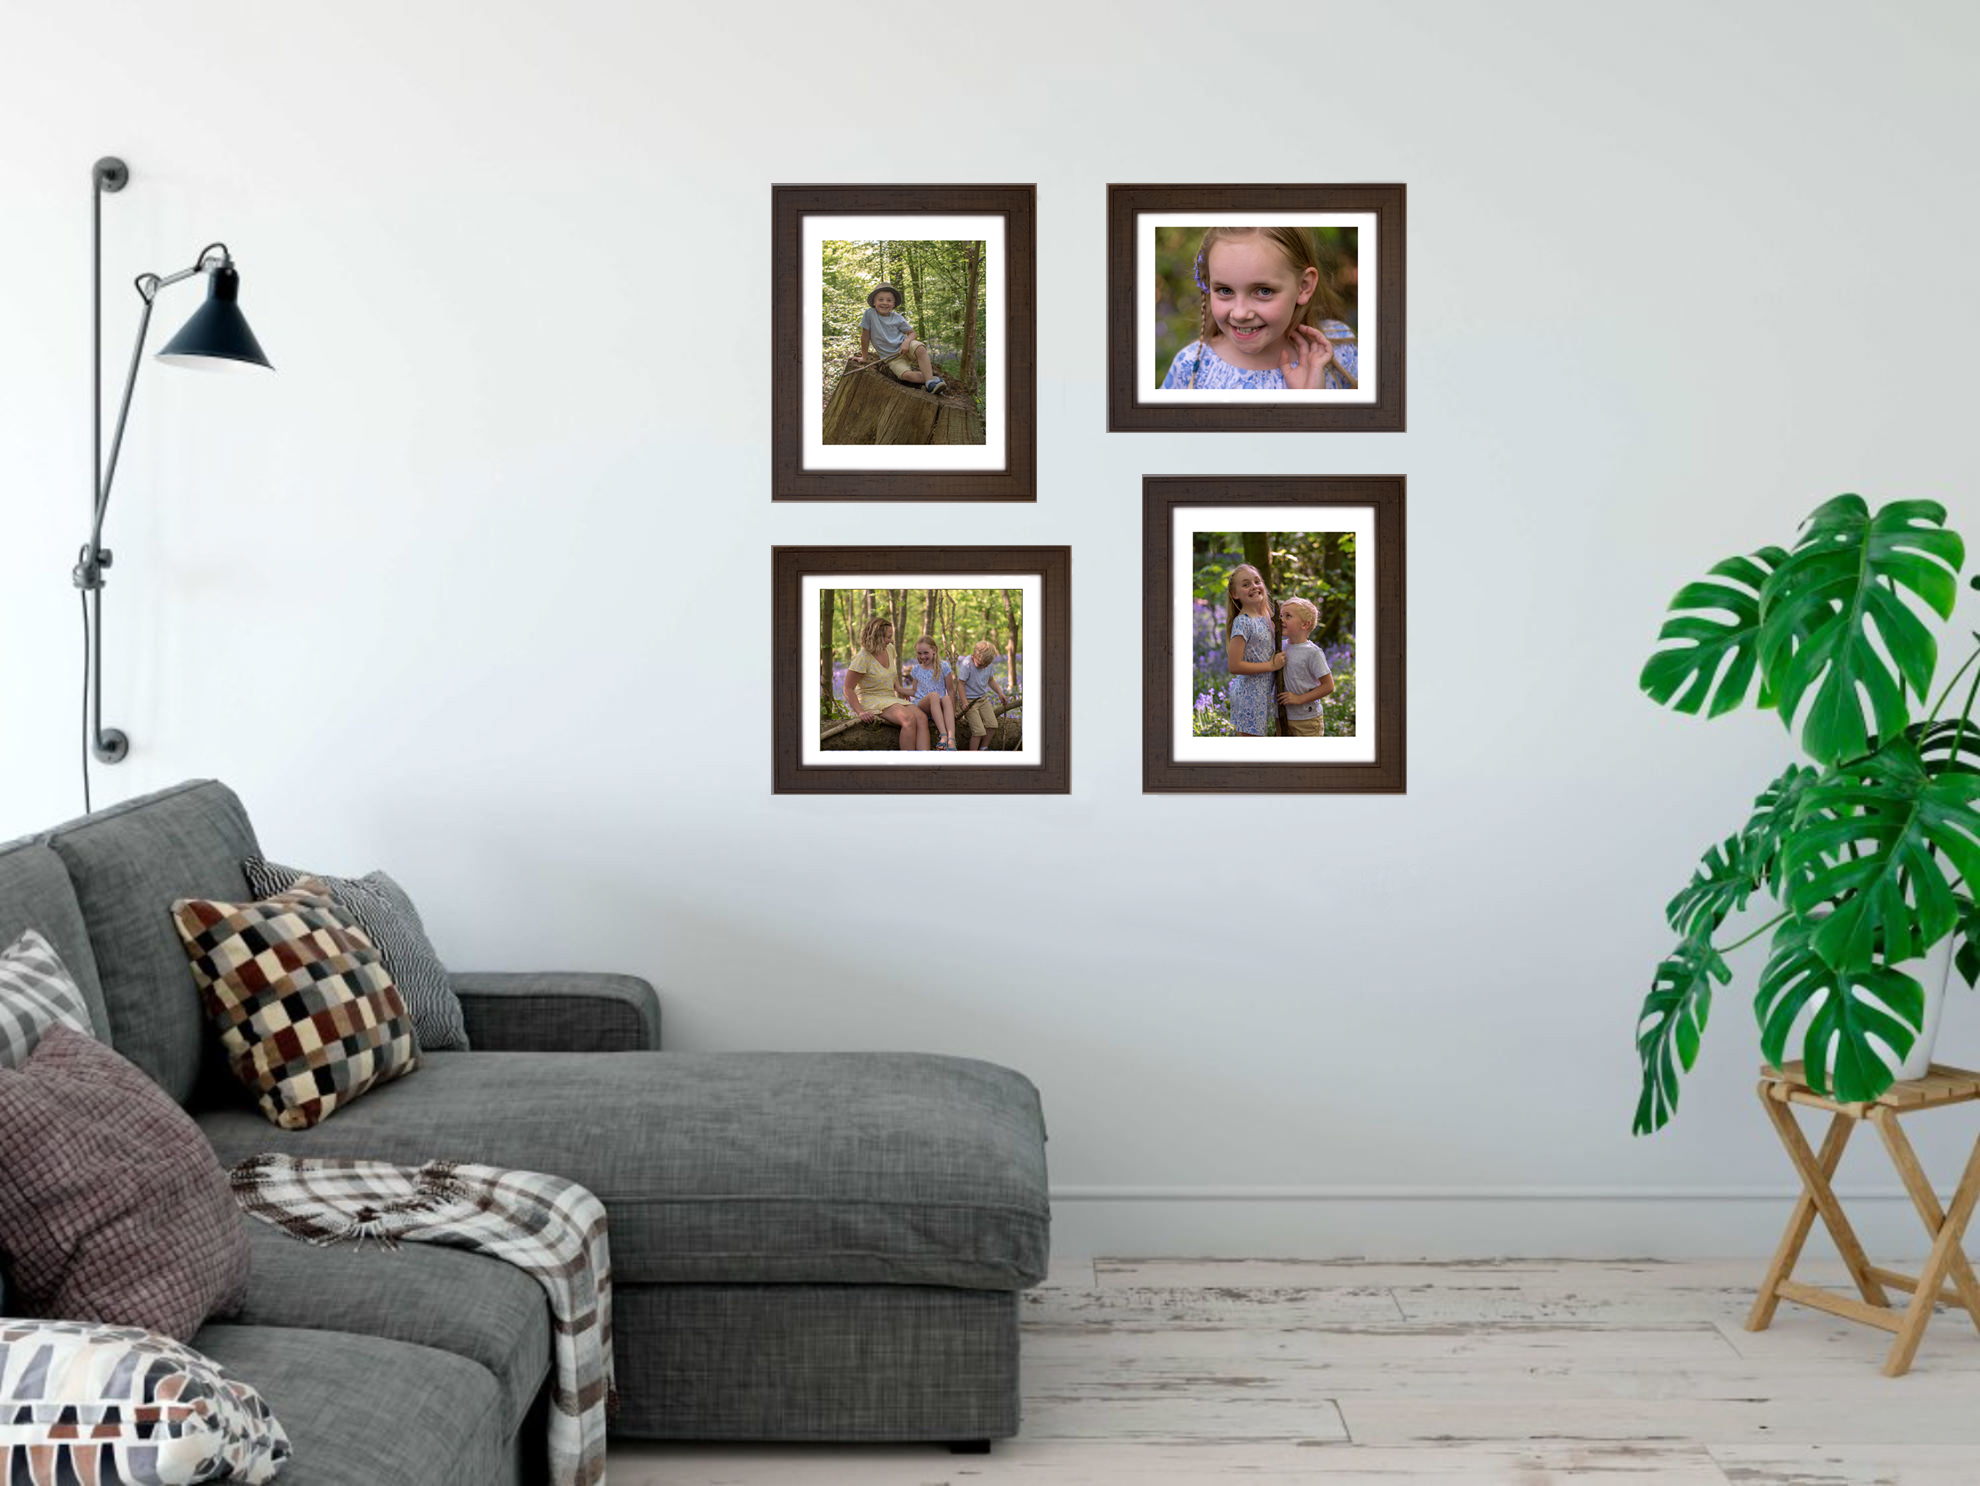 A Quad wall art gallery from one of our relaxed, bluebell family photography sessions.